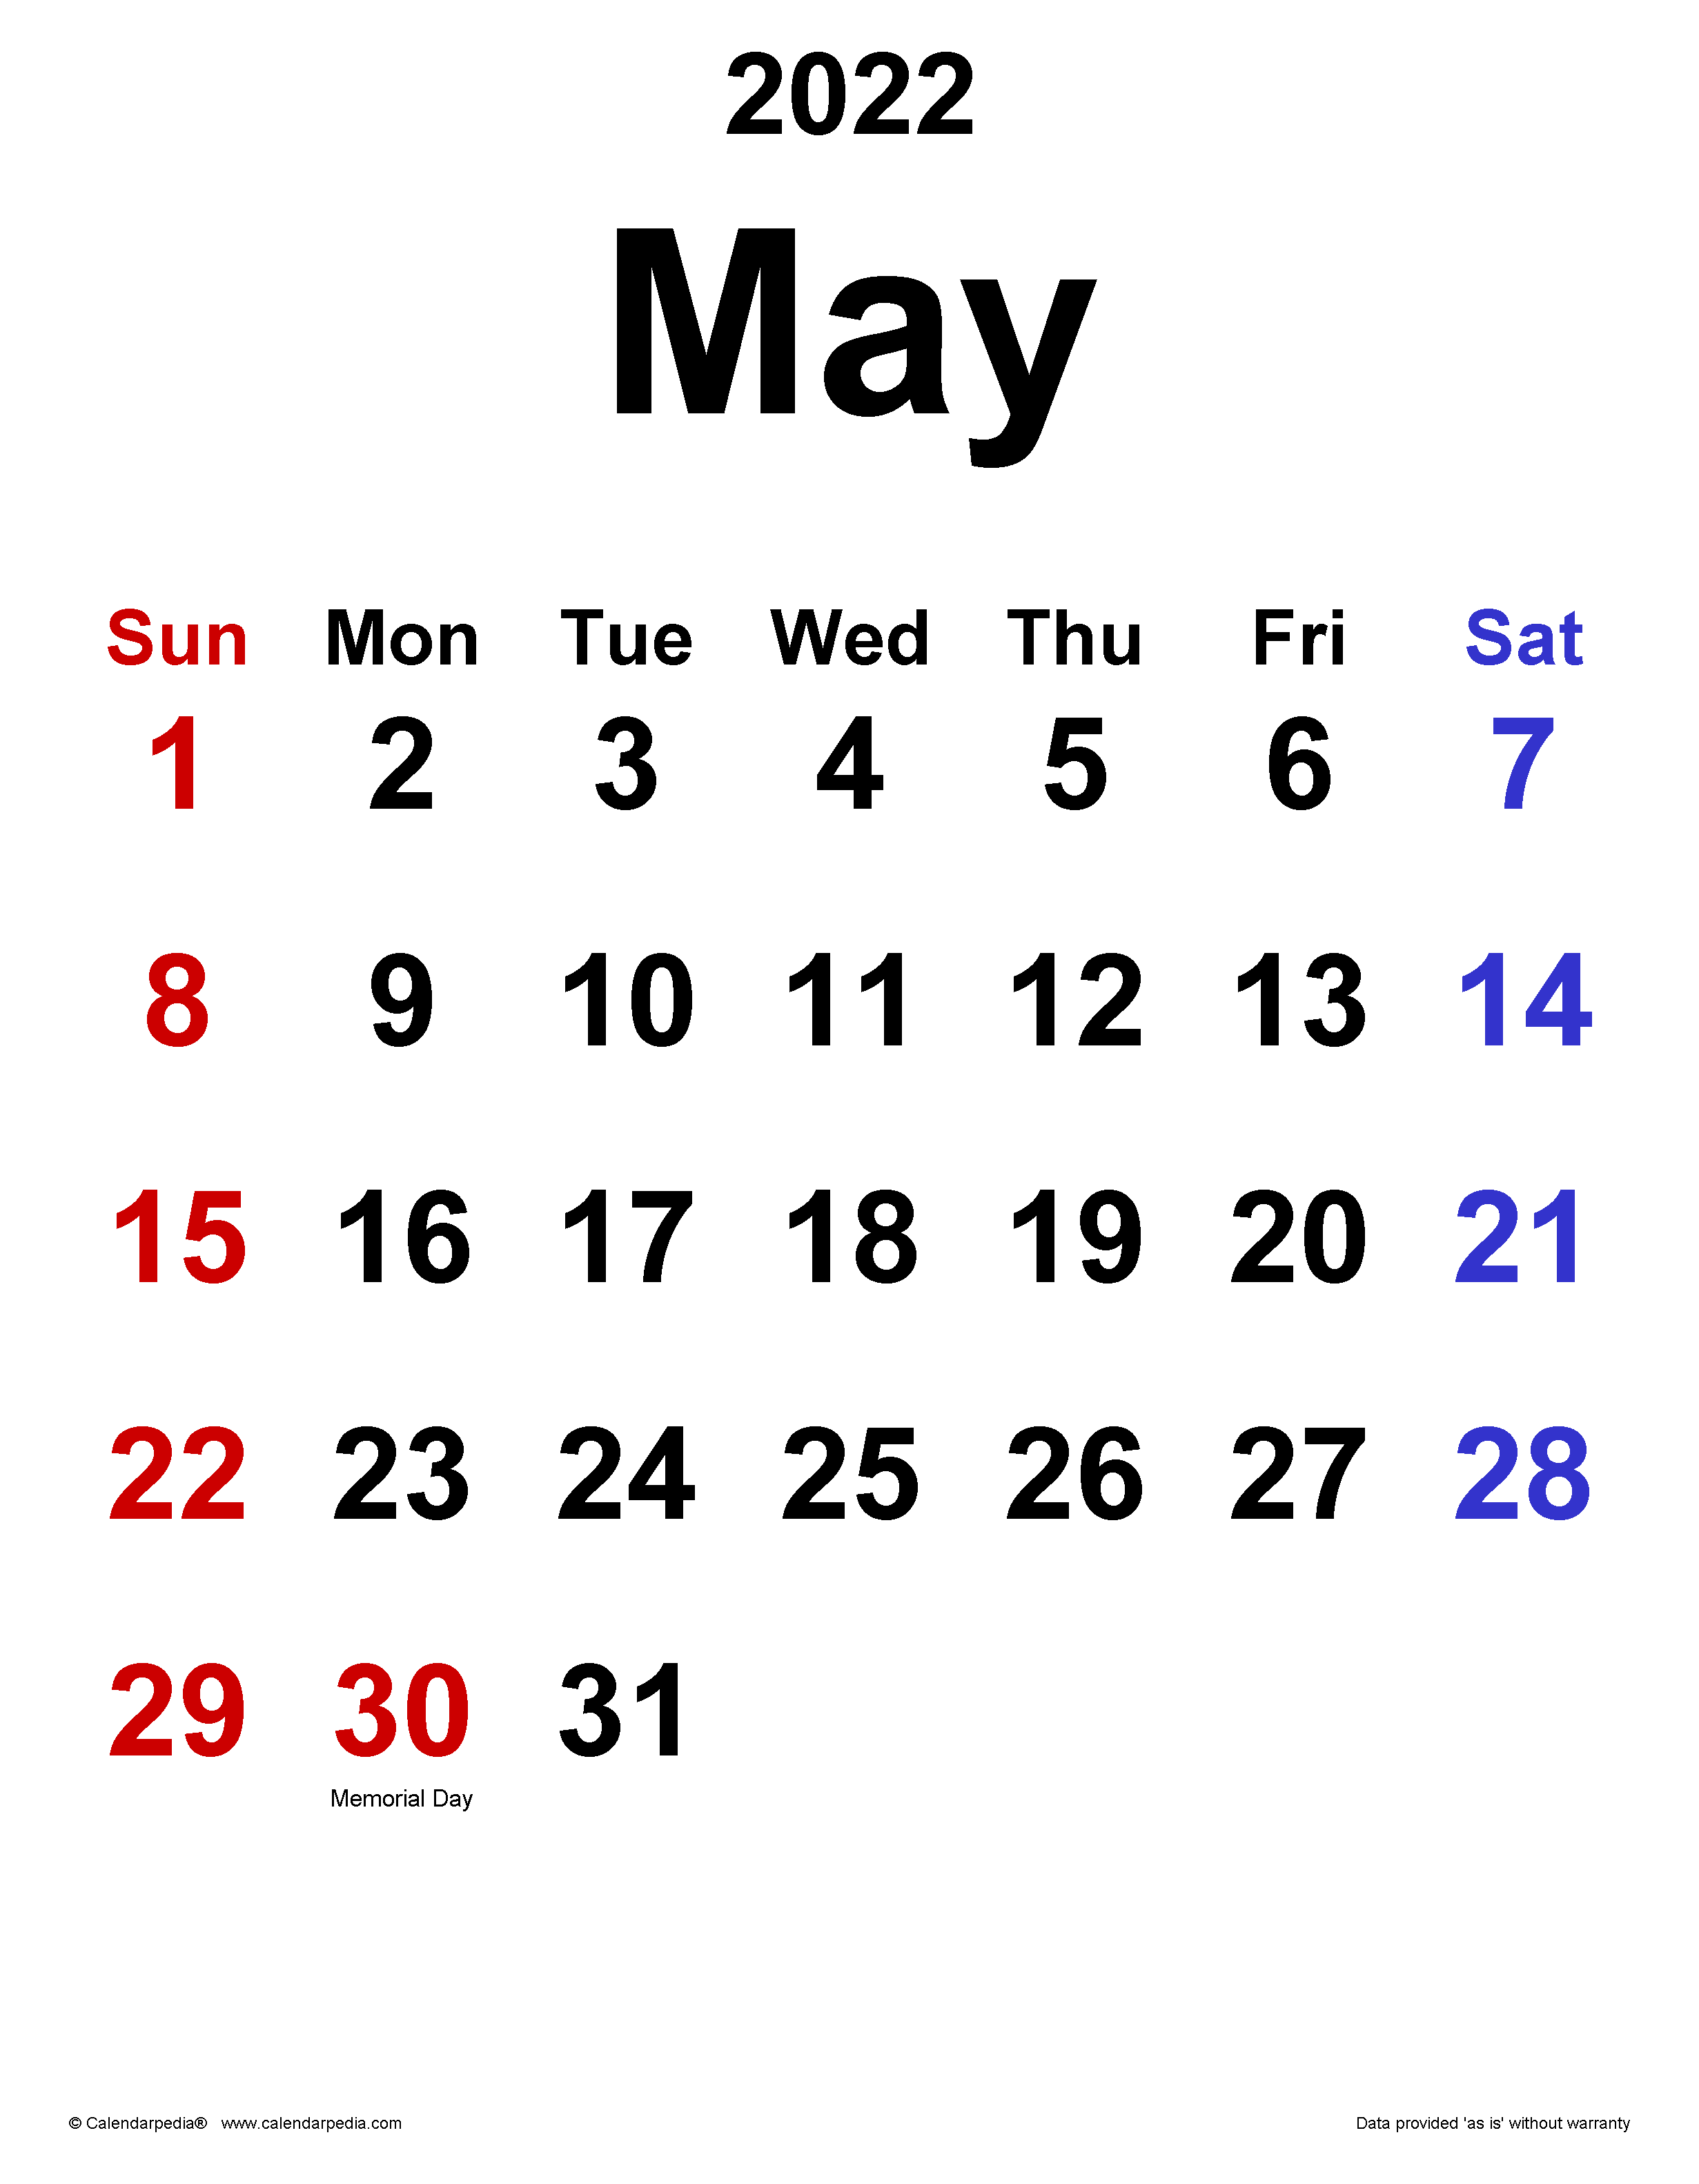 Calendar April May 2022.May 2022 Calendar Templates For Word Excel And Pdf